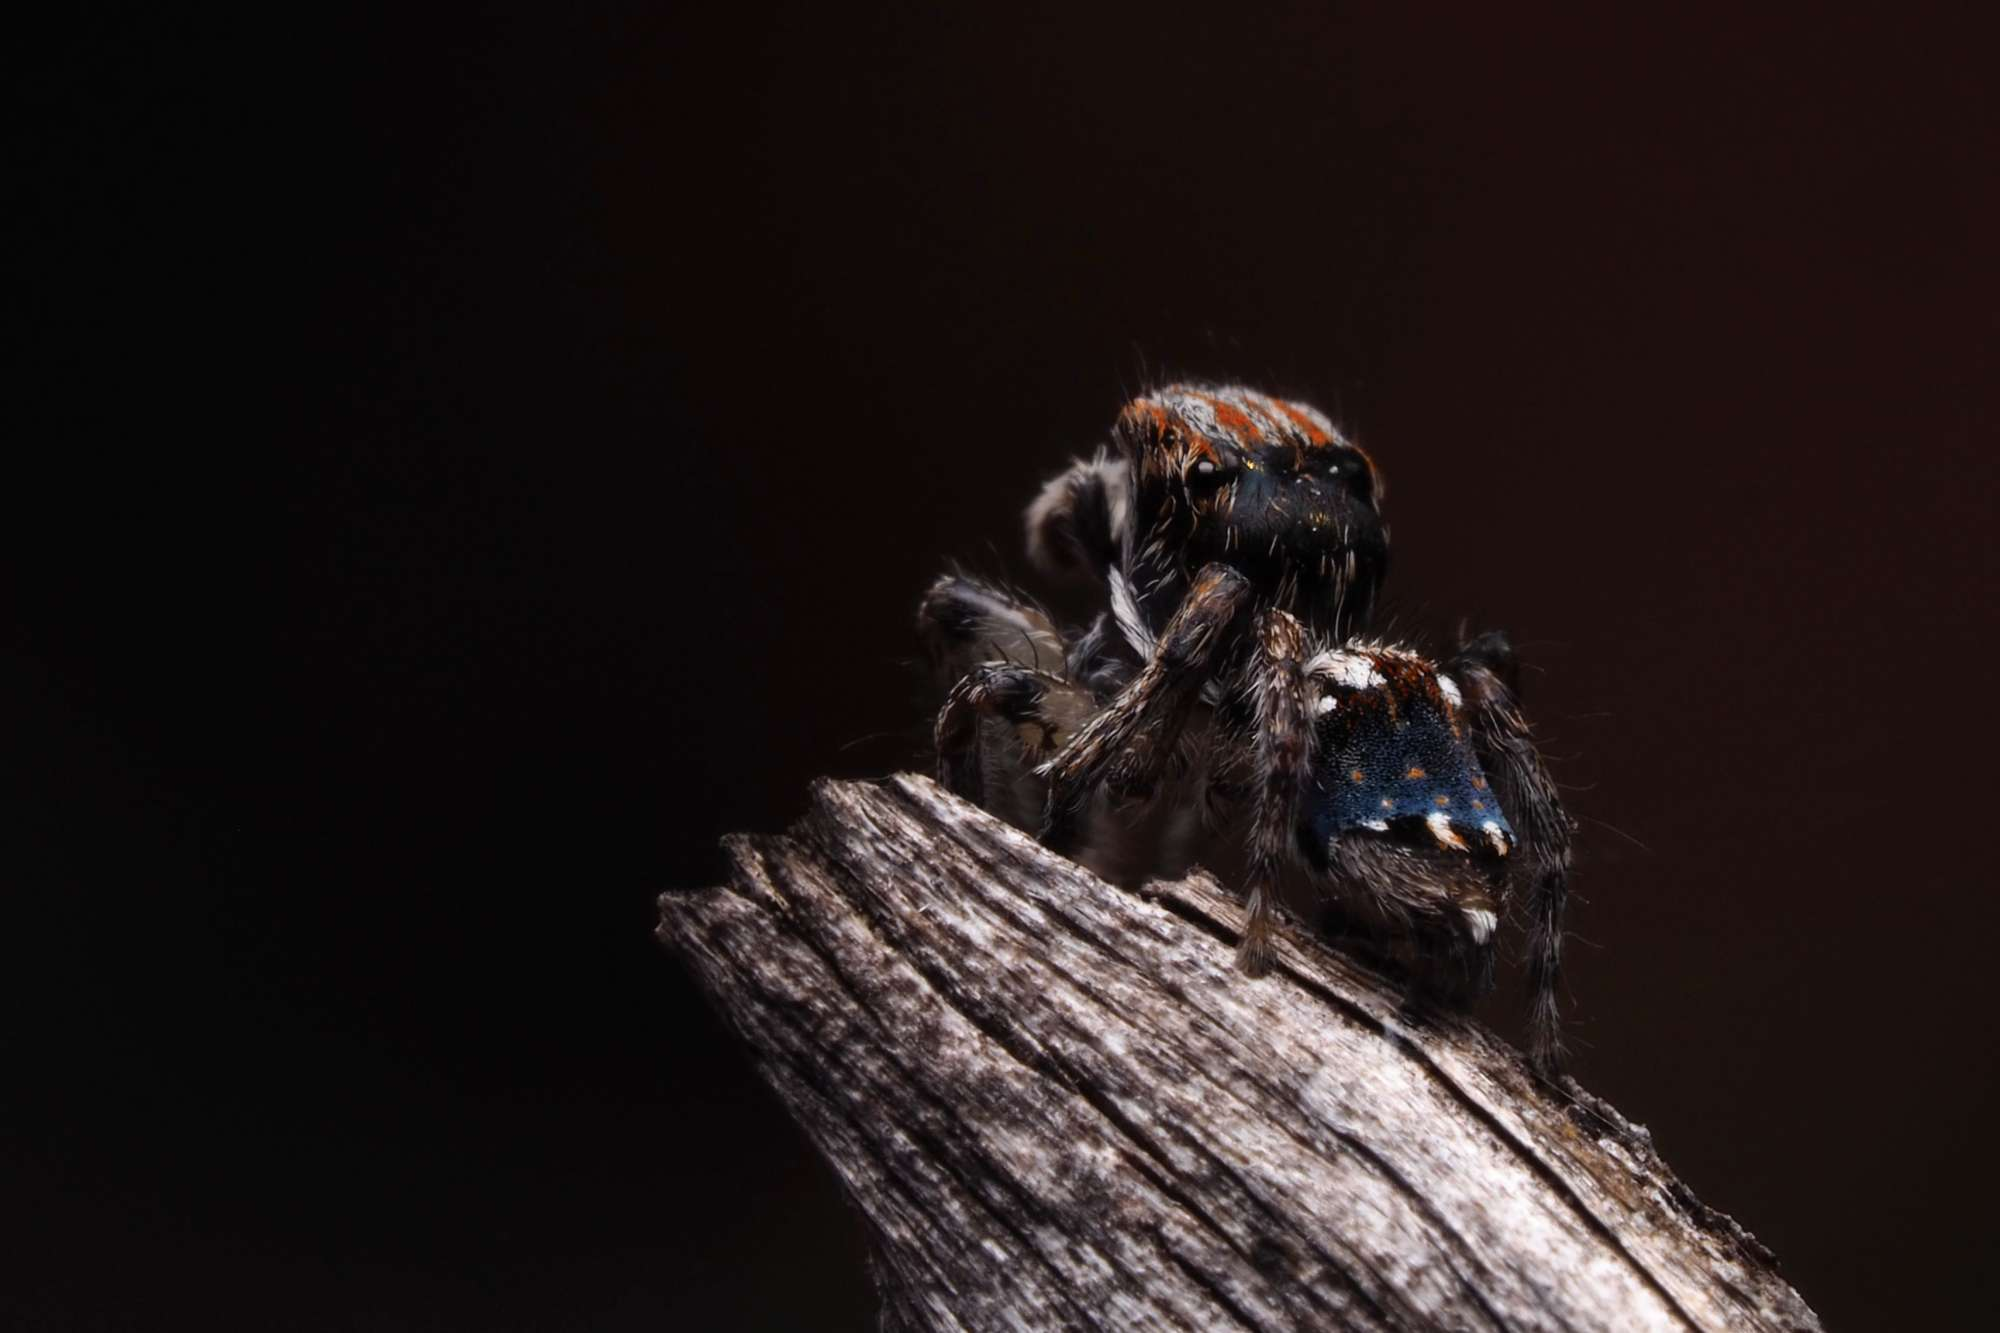 Peacock Spider Maratus australis Look Closer with Dr. Mat